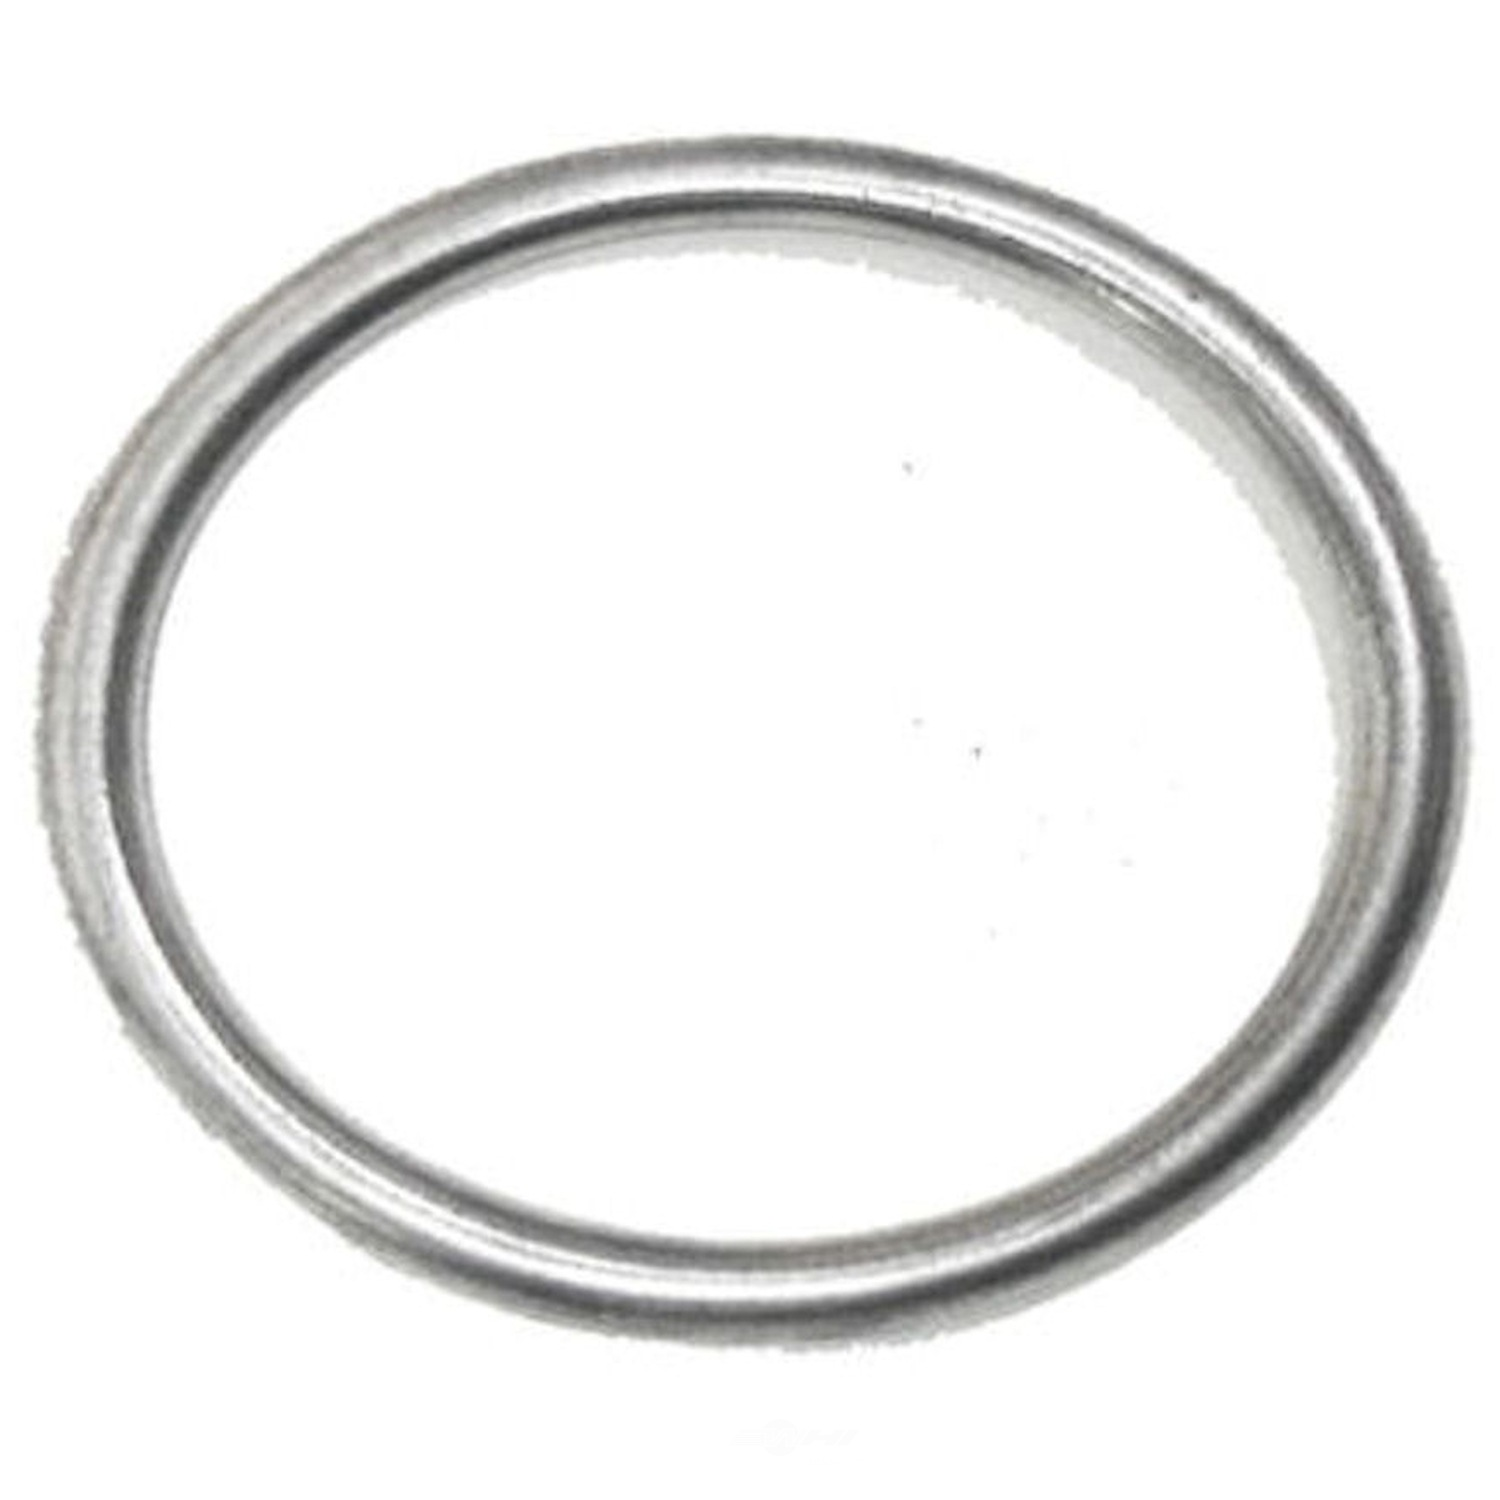 BOSAL 49 STATE CONVERTERS - Exhaust Pipe Flange Gasket (Outlet) - BSF 256-215